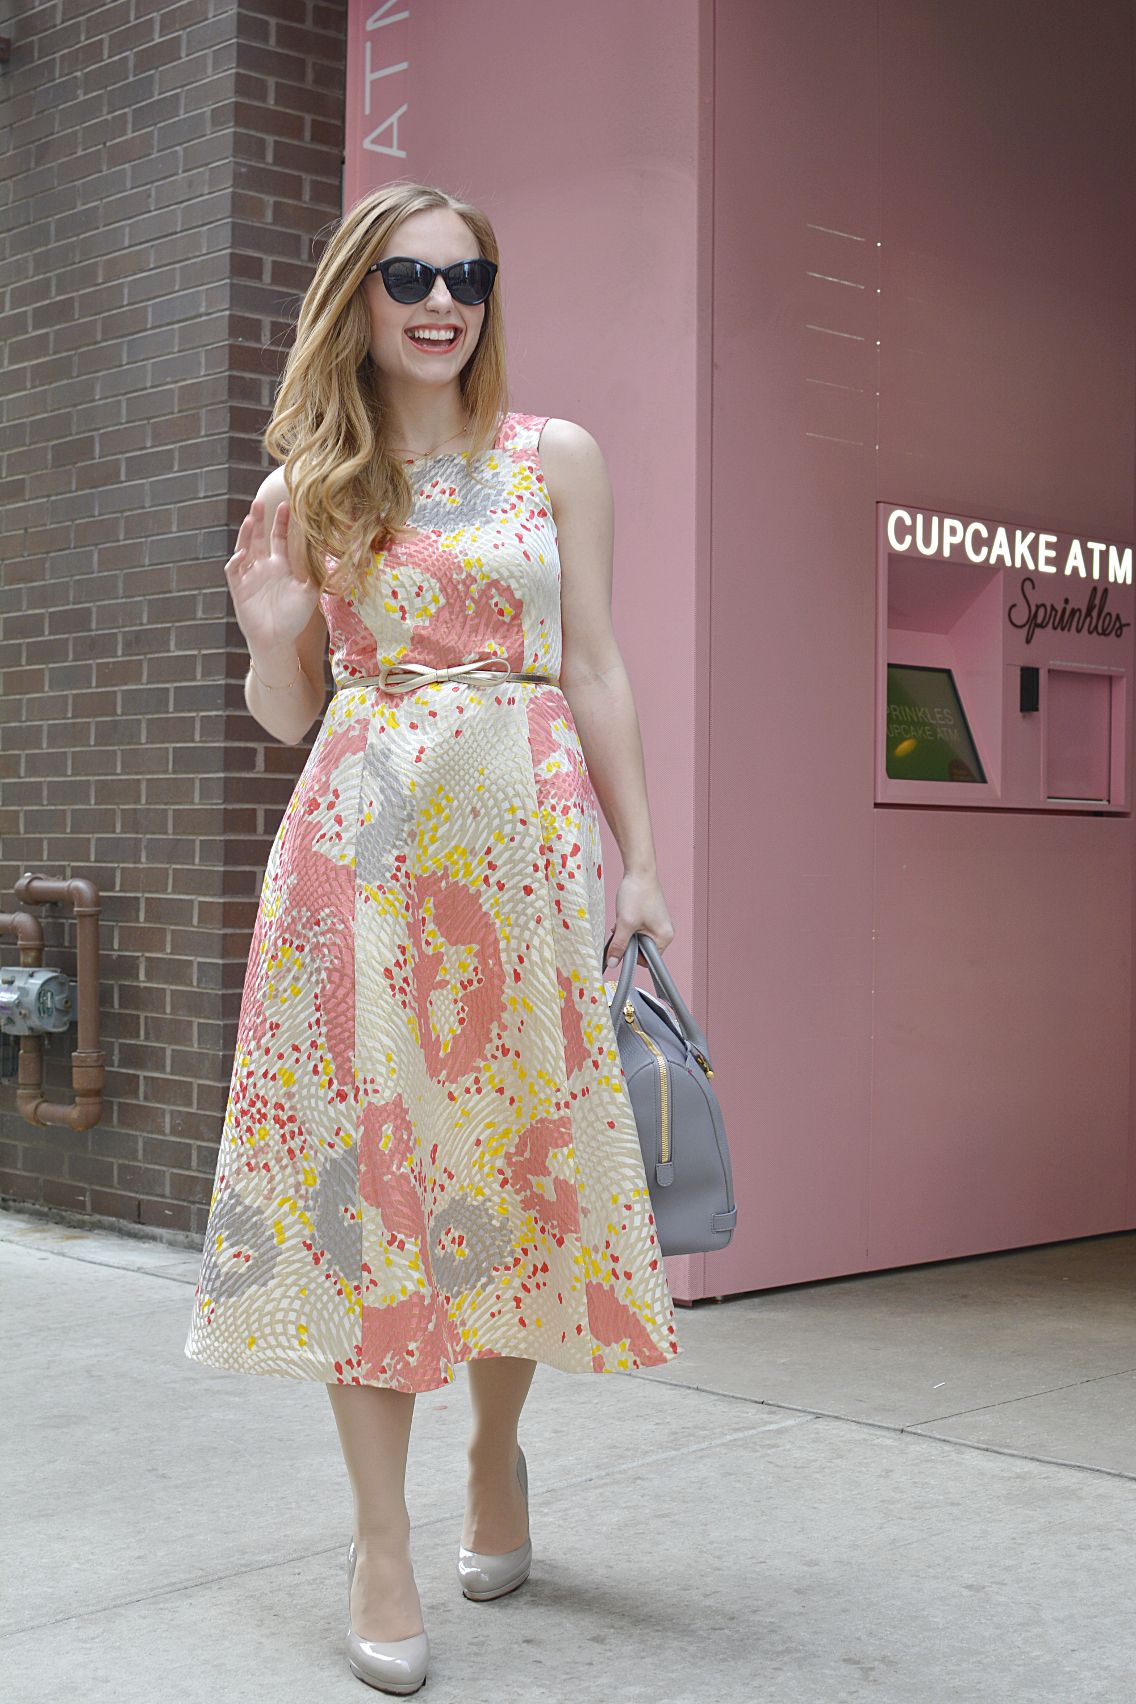 LK Bennett Chicago Gardo Jacquard Dress Sprinkles Cupcakes 8